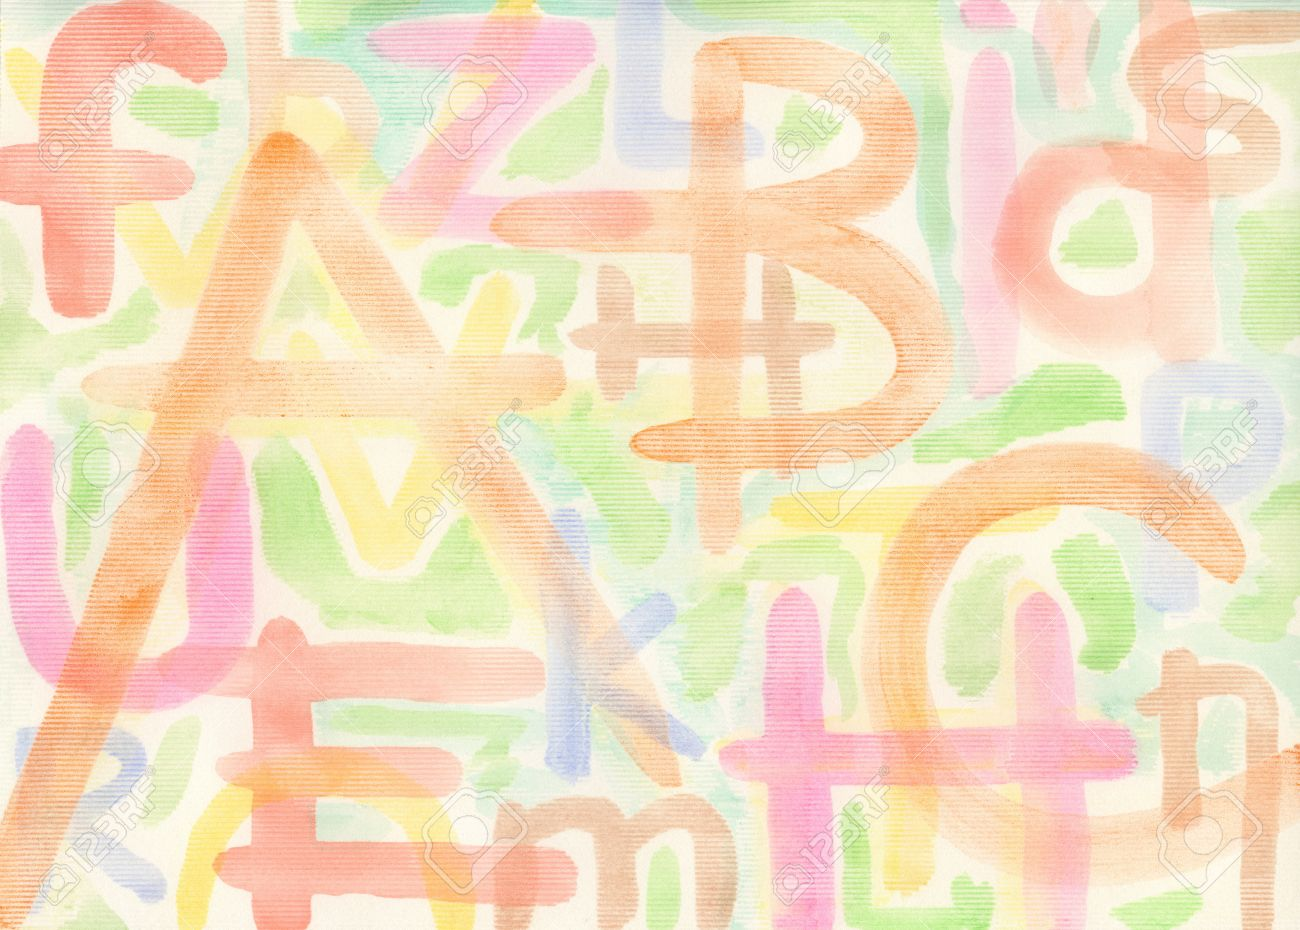 abstract yellow watercolor hand painted artistic background with letters made myself stock photo